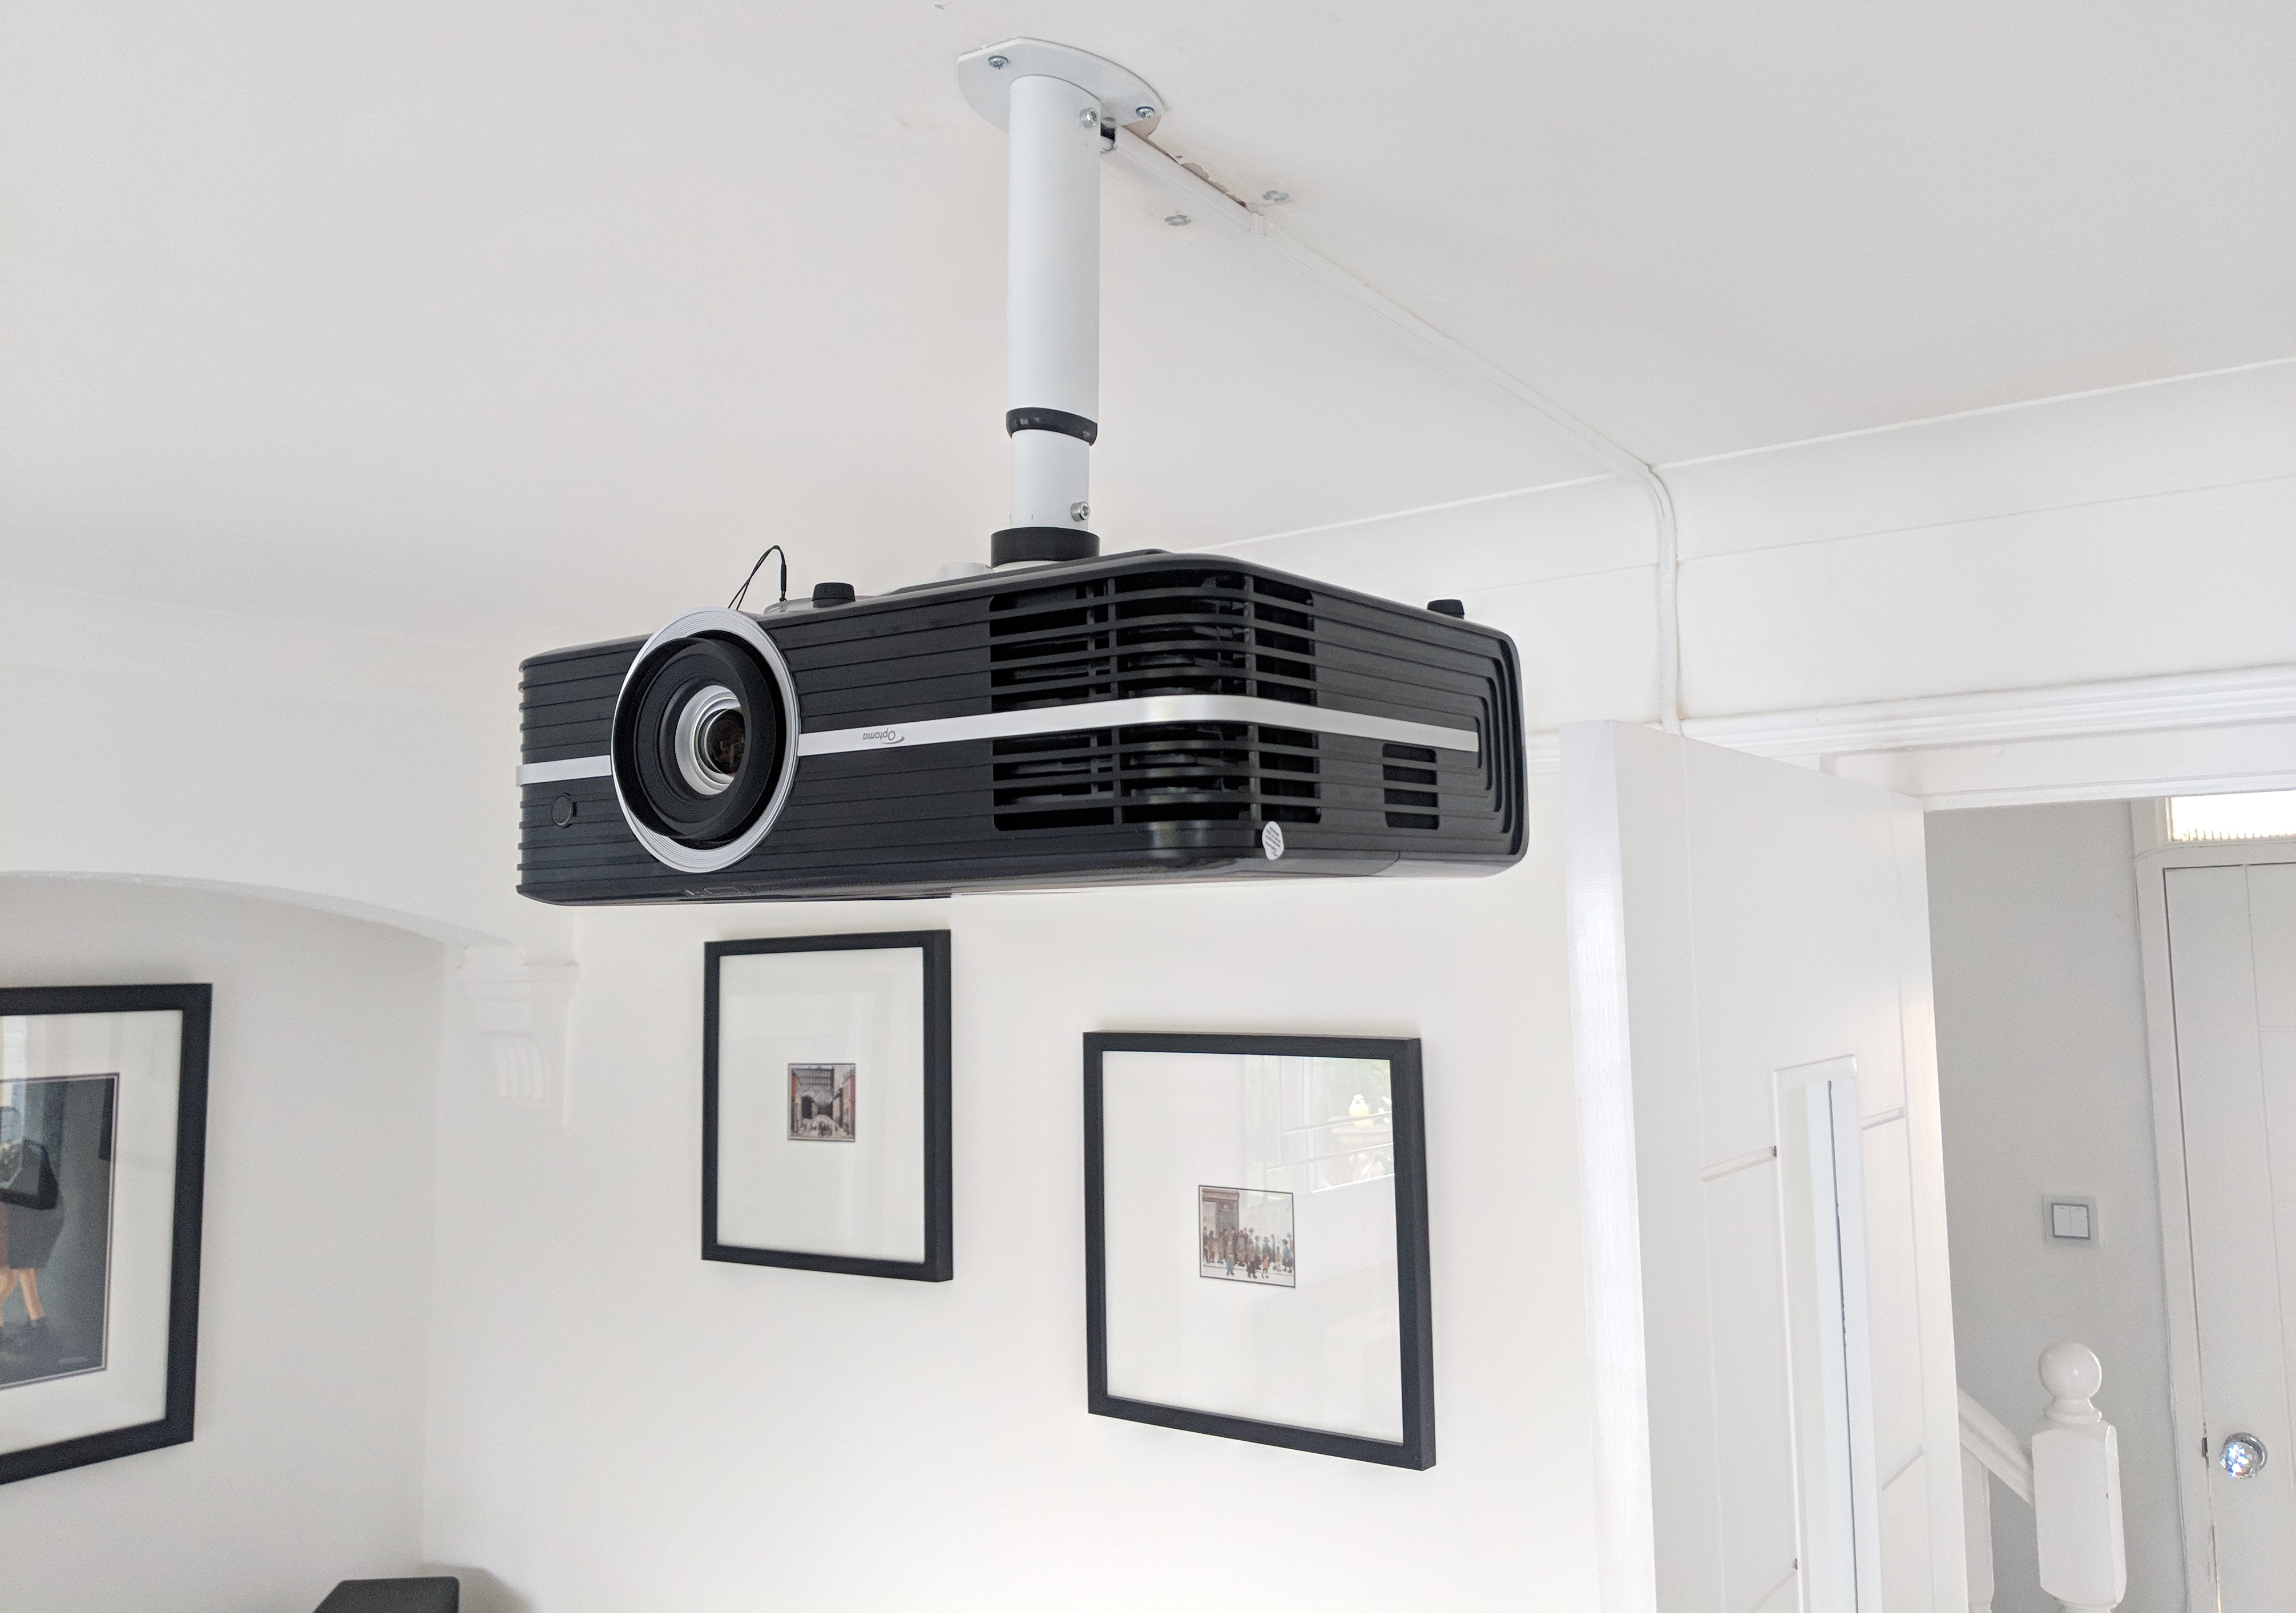 Optoma UHD 51 / 51A 4k Projector Owners Thread | AVForums